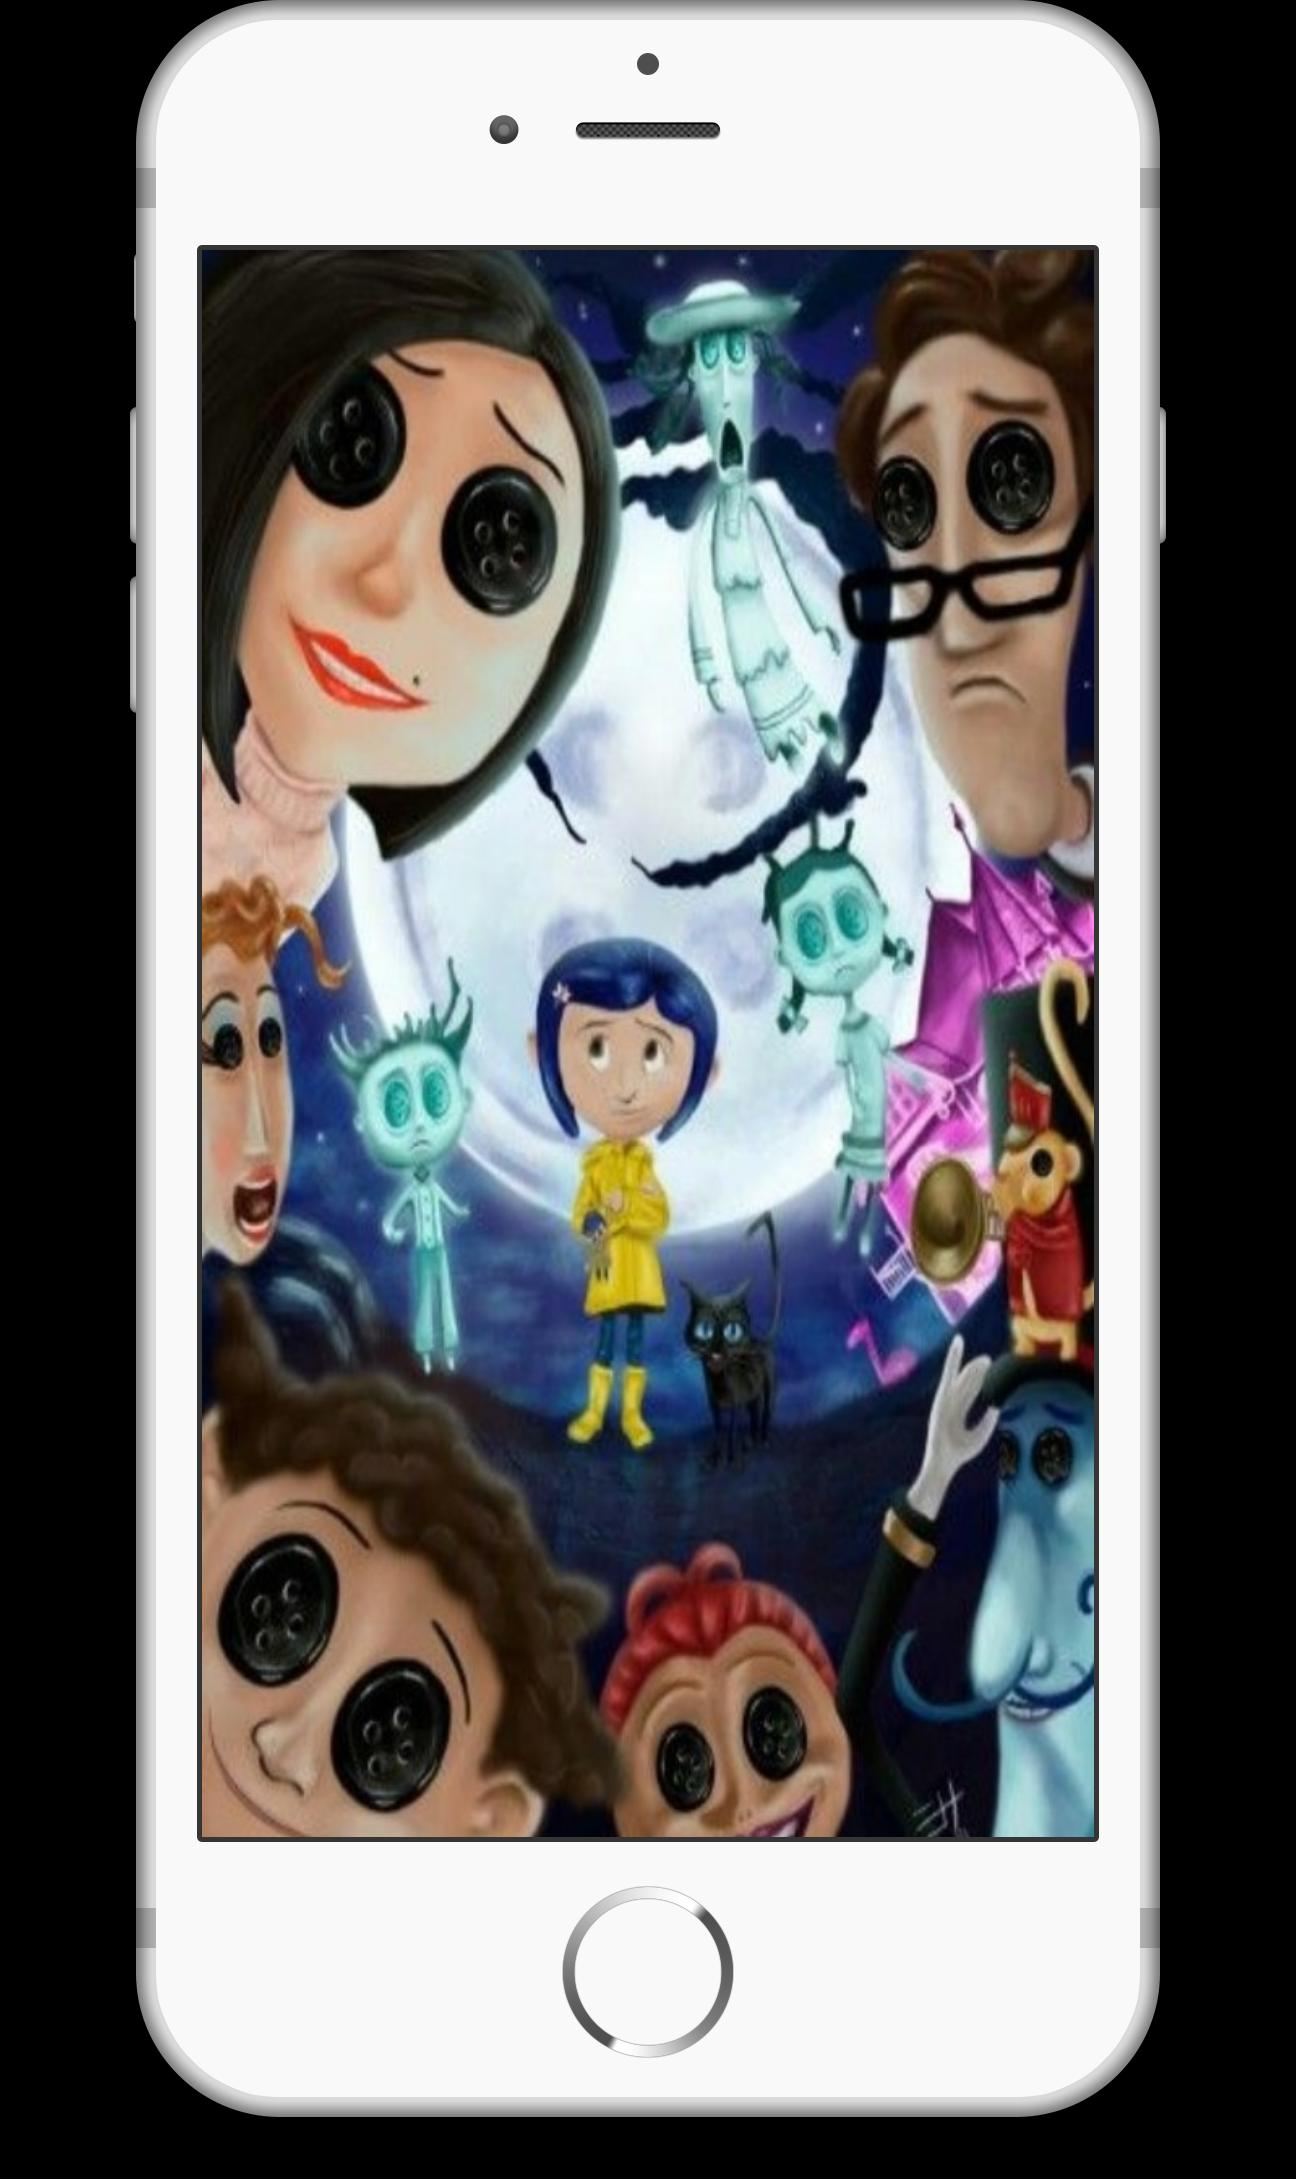 Coraline Wallpapers 4k Hd For Android Apk Download